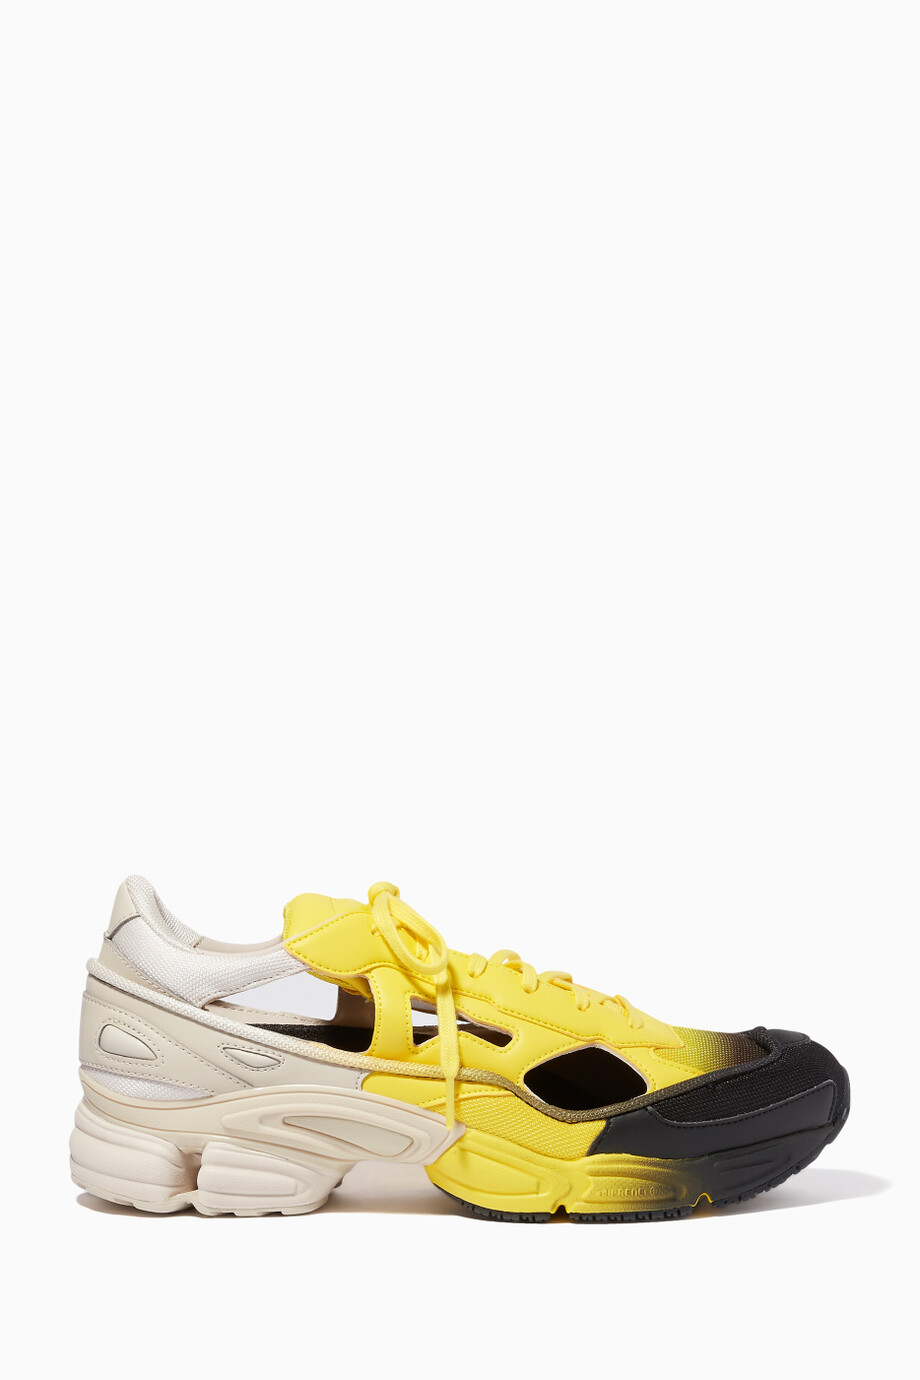 cheap where to buy best sell Shop Adidas x Raf Simons Yellow RS Replicant Ozweego ...